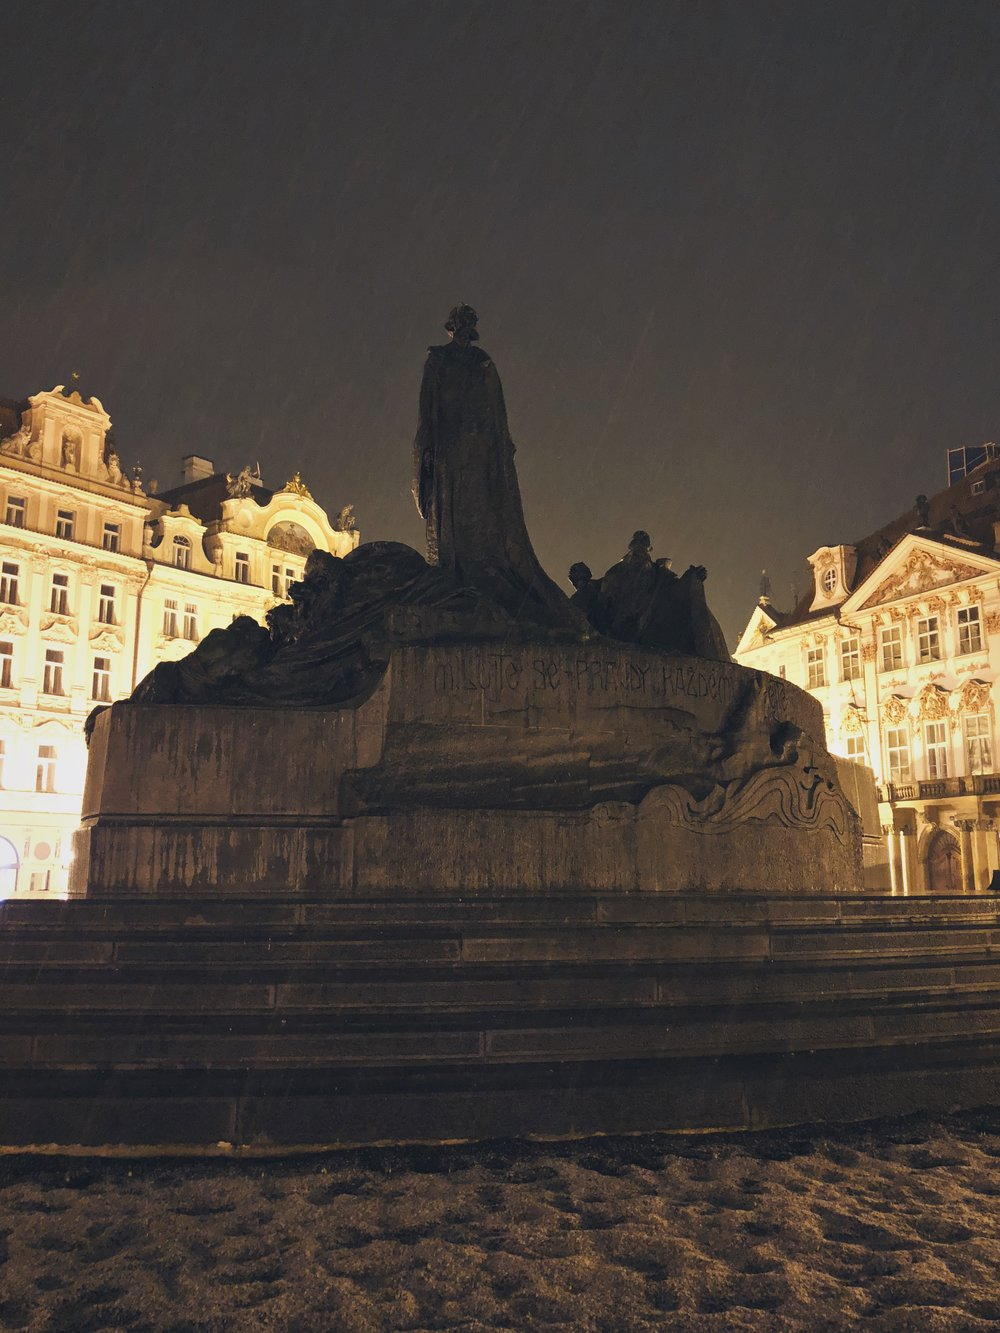 Jan Hus watching over Prague's snowy Old Town Square.